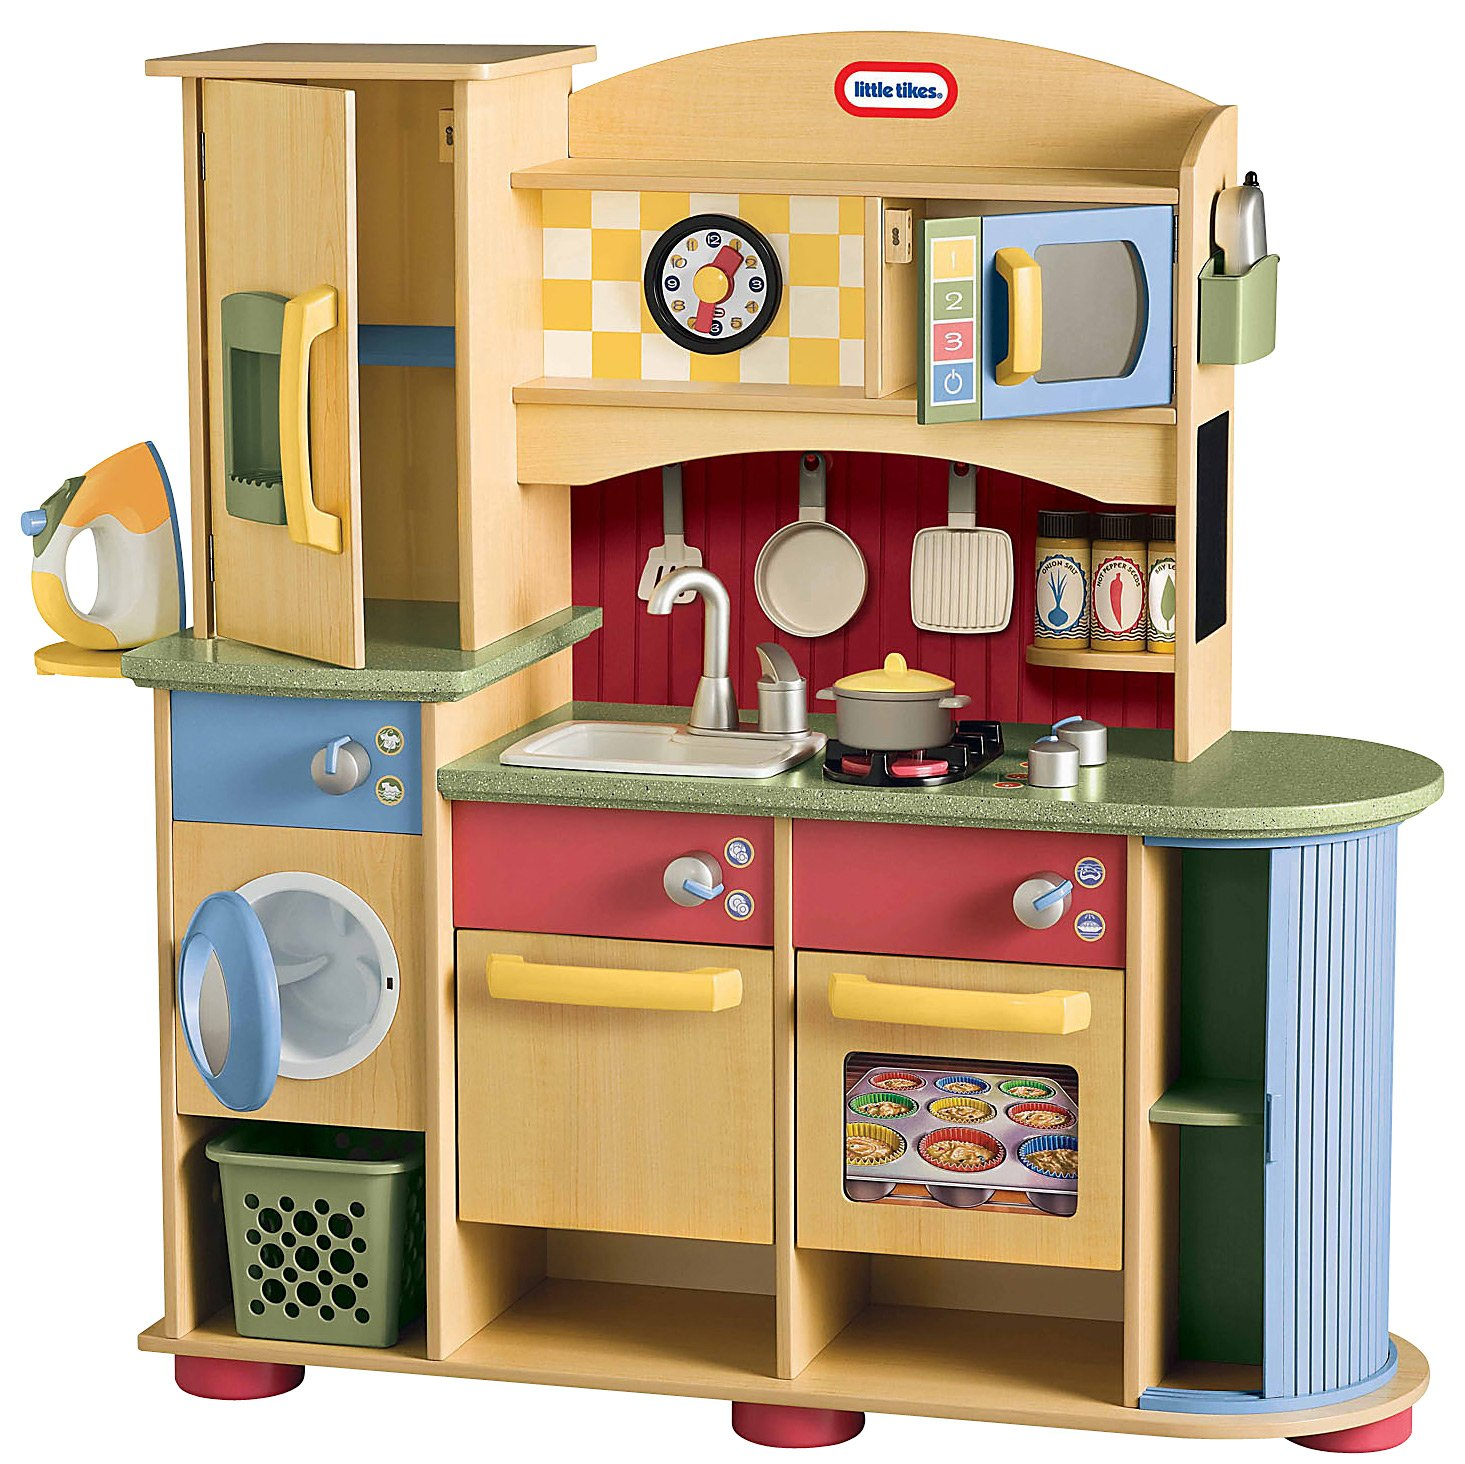 Little tikes deluxe wooden kitchen and laundry center for Kitchen set pictures